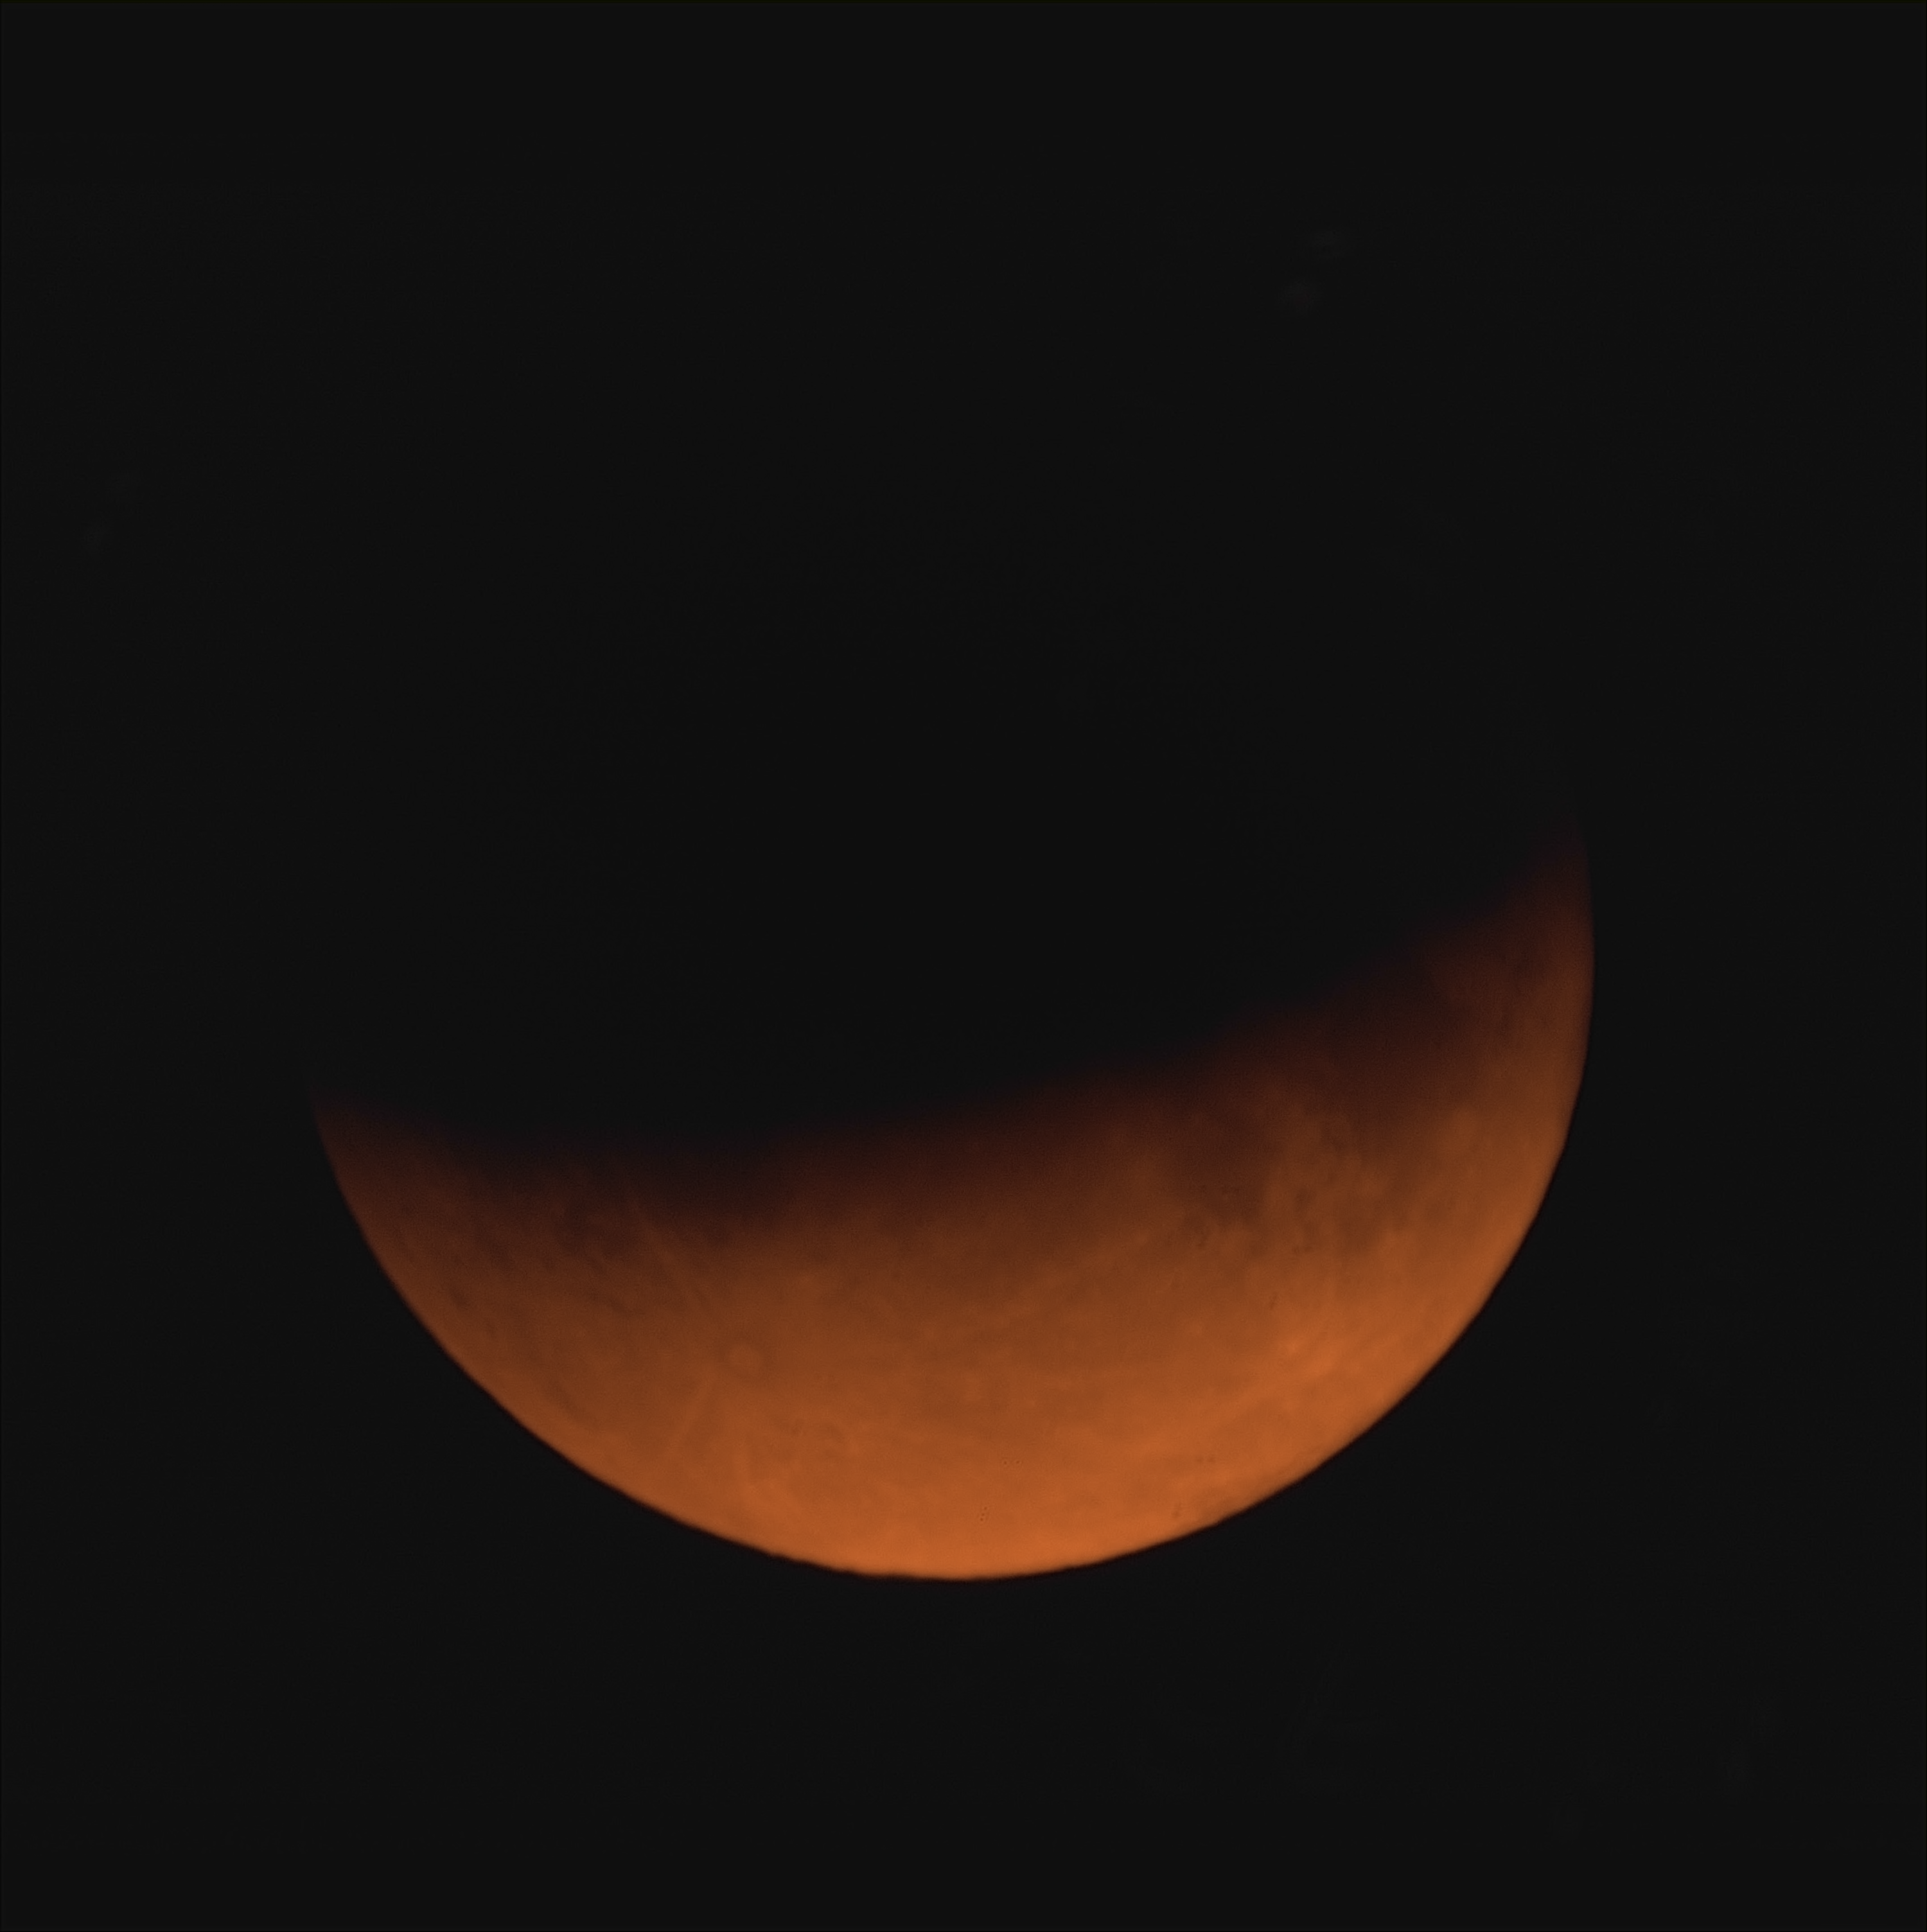 Partial Lunar Eclipse 16 July 2019